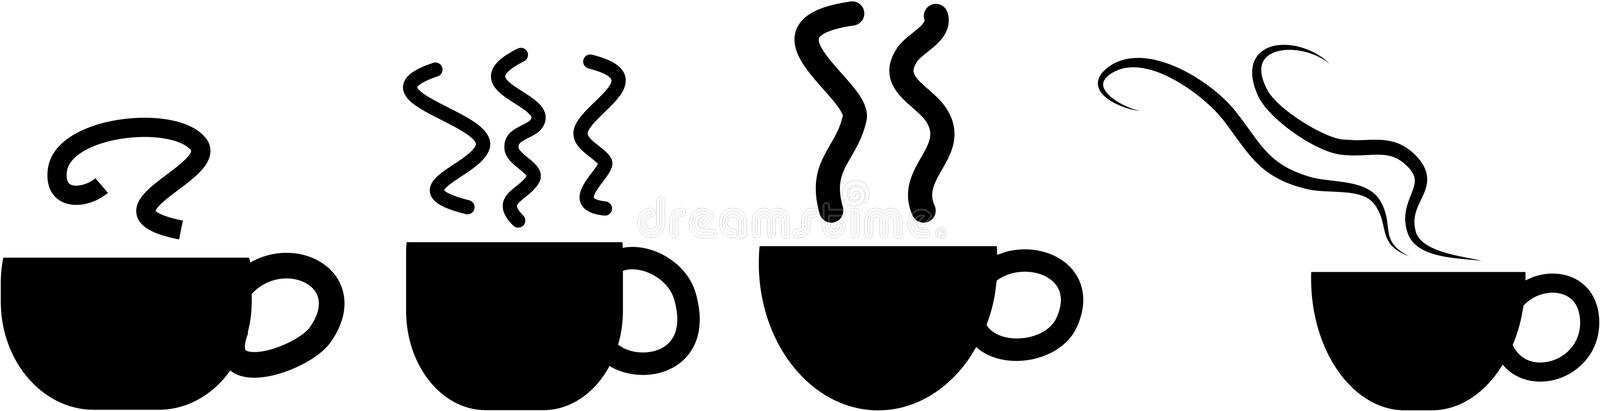 Download Coffee Cup Icons stock illustration. Illustration of coffee - 90926